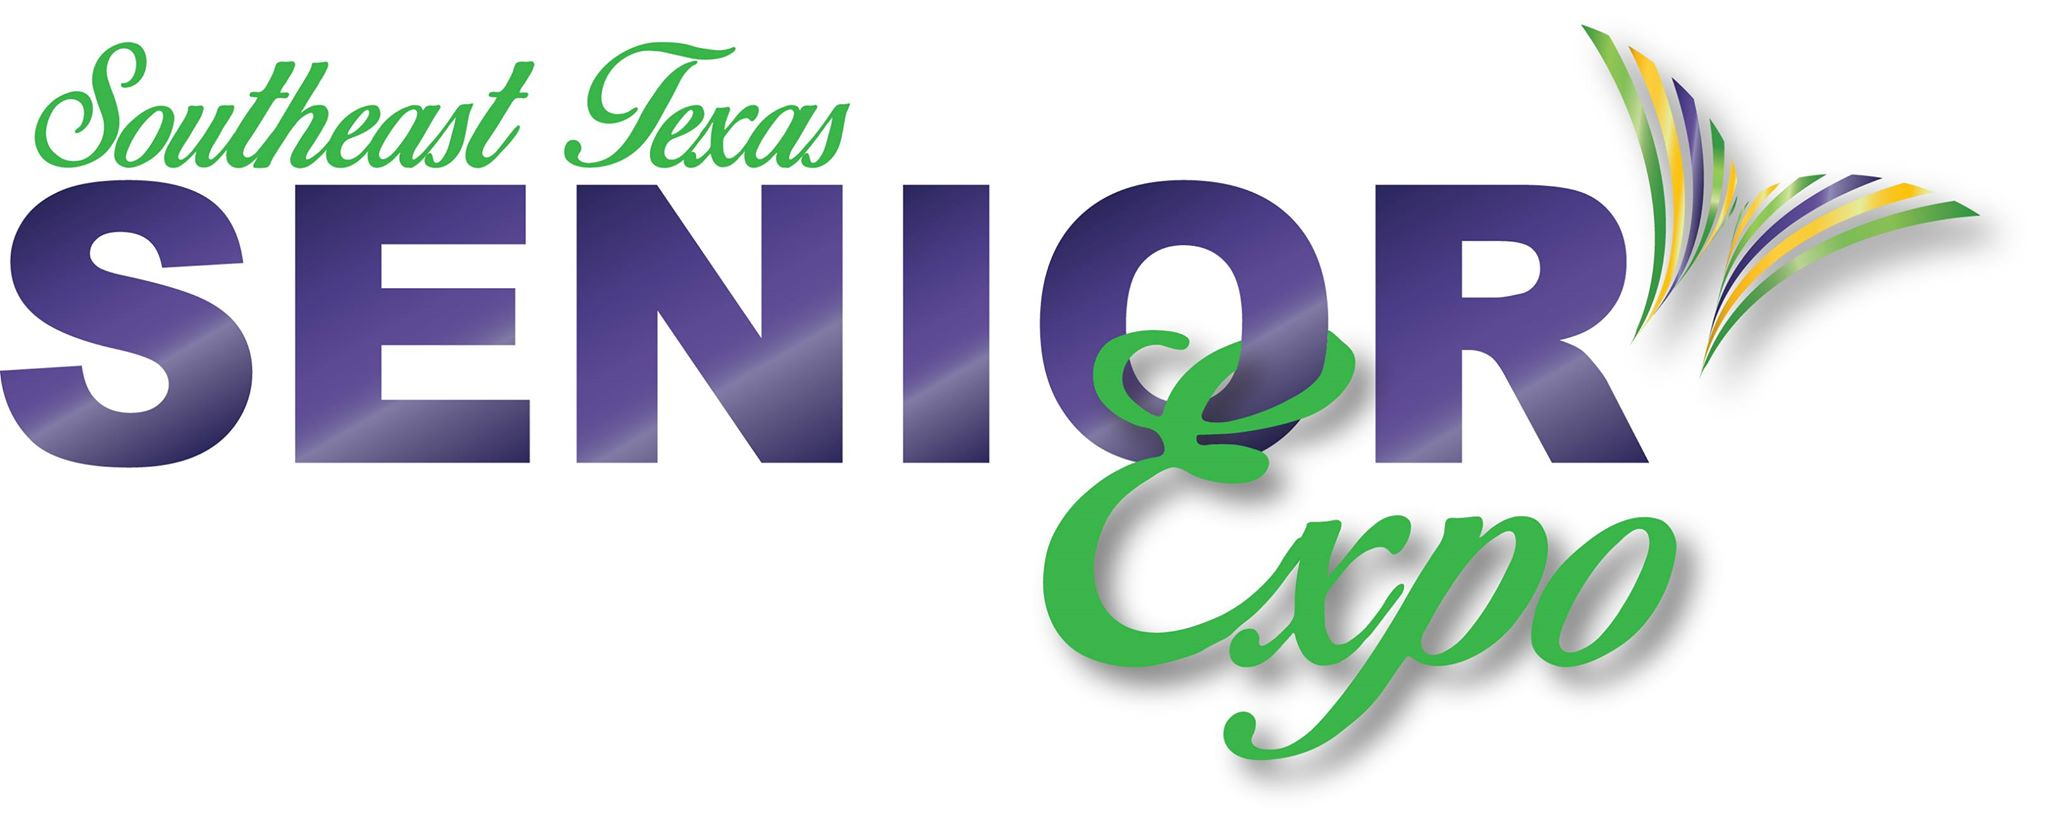 Senior Expo Beaumontt TX, Senior Expo Lumberton, Senior Expo Port Arthur, health fair Lumberton TX, health Fair Port Arthur